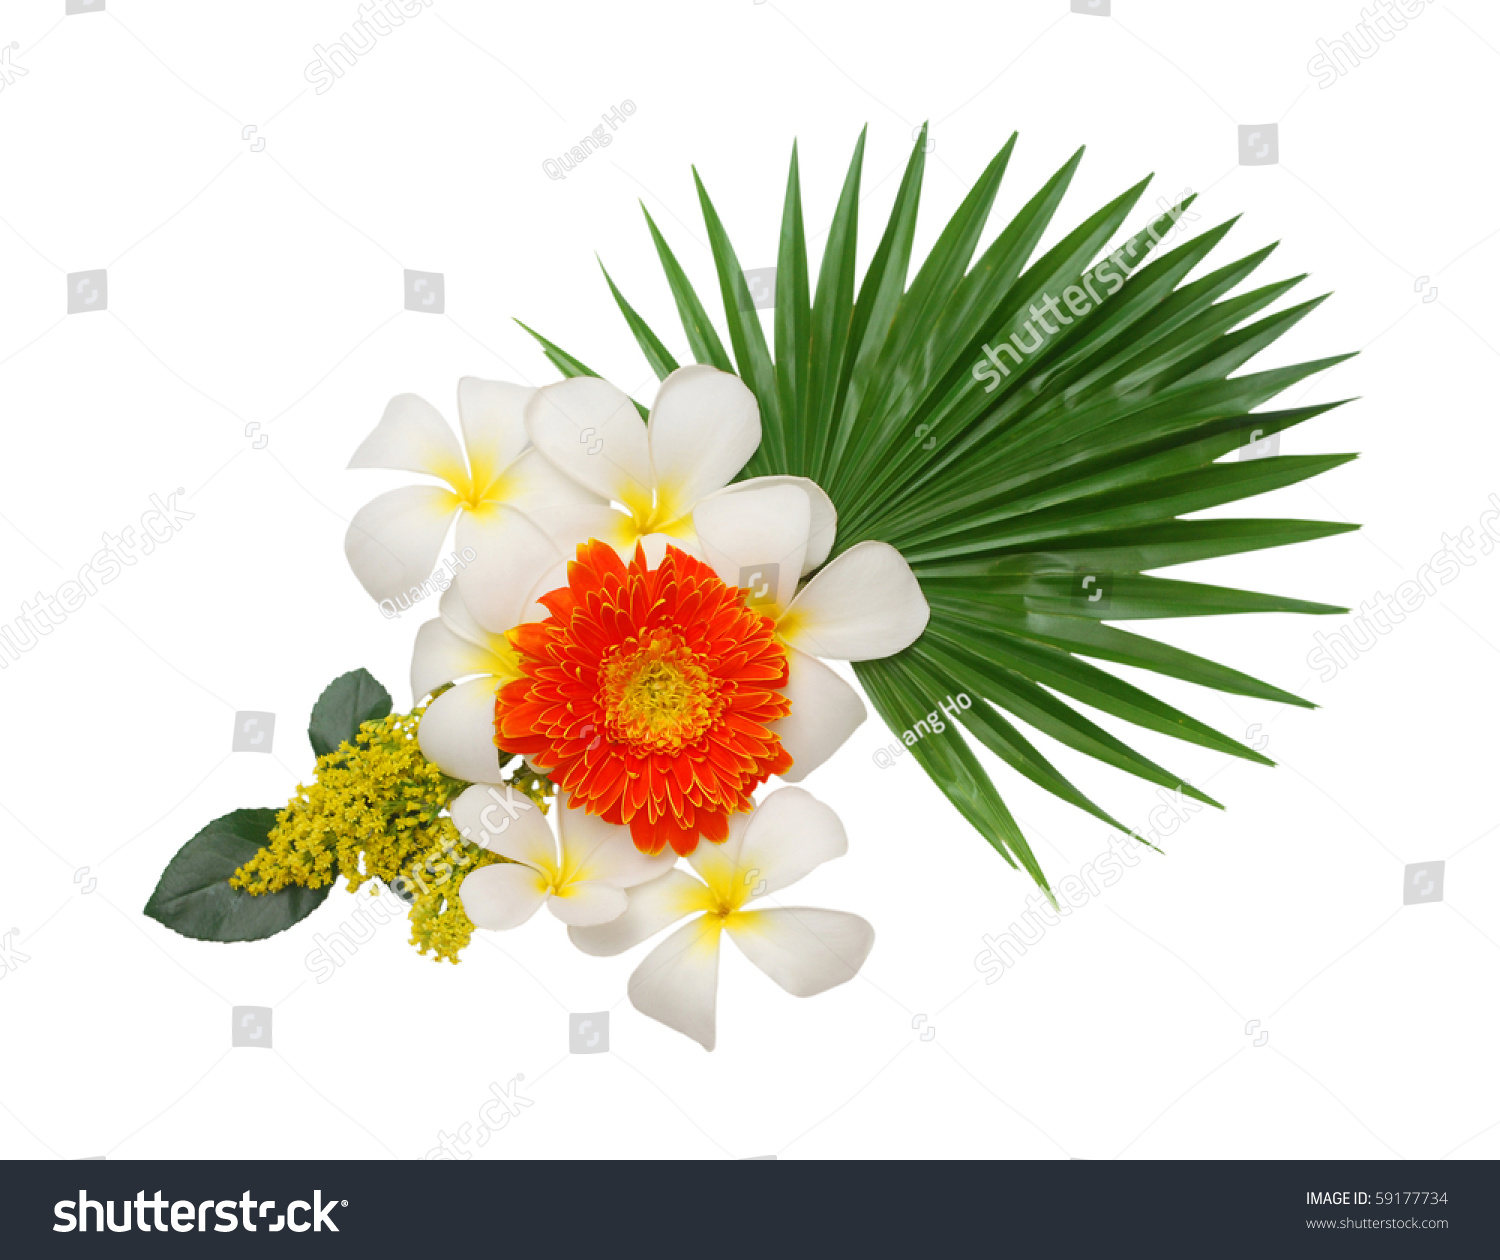 goodluck flower bouquet stock photo   shutterstock, Beautiful flower